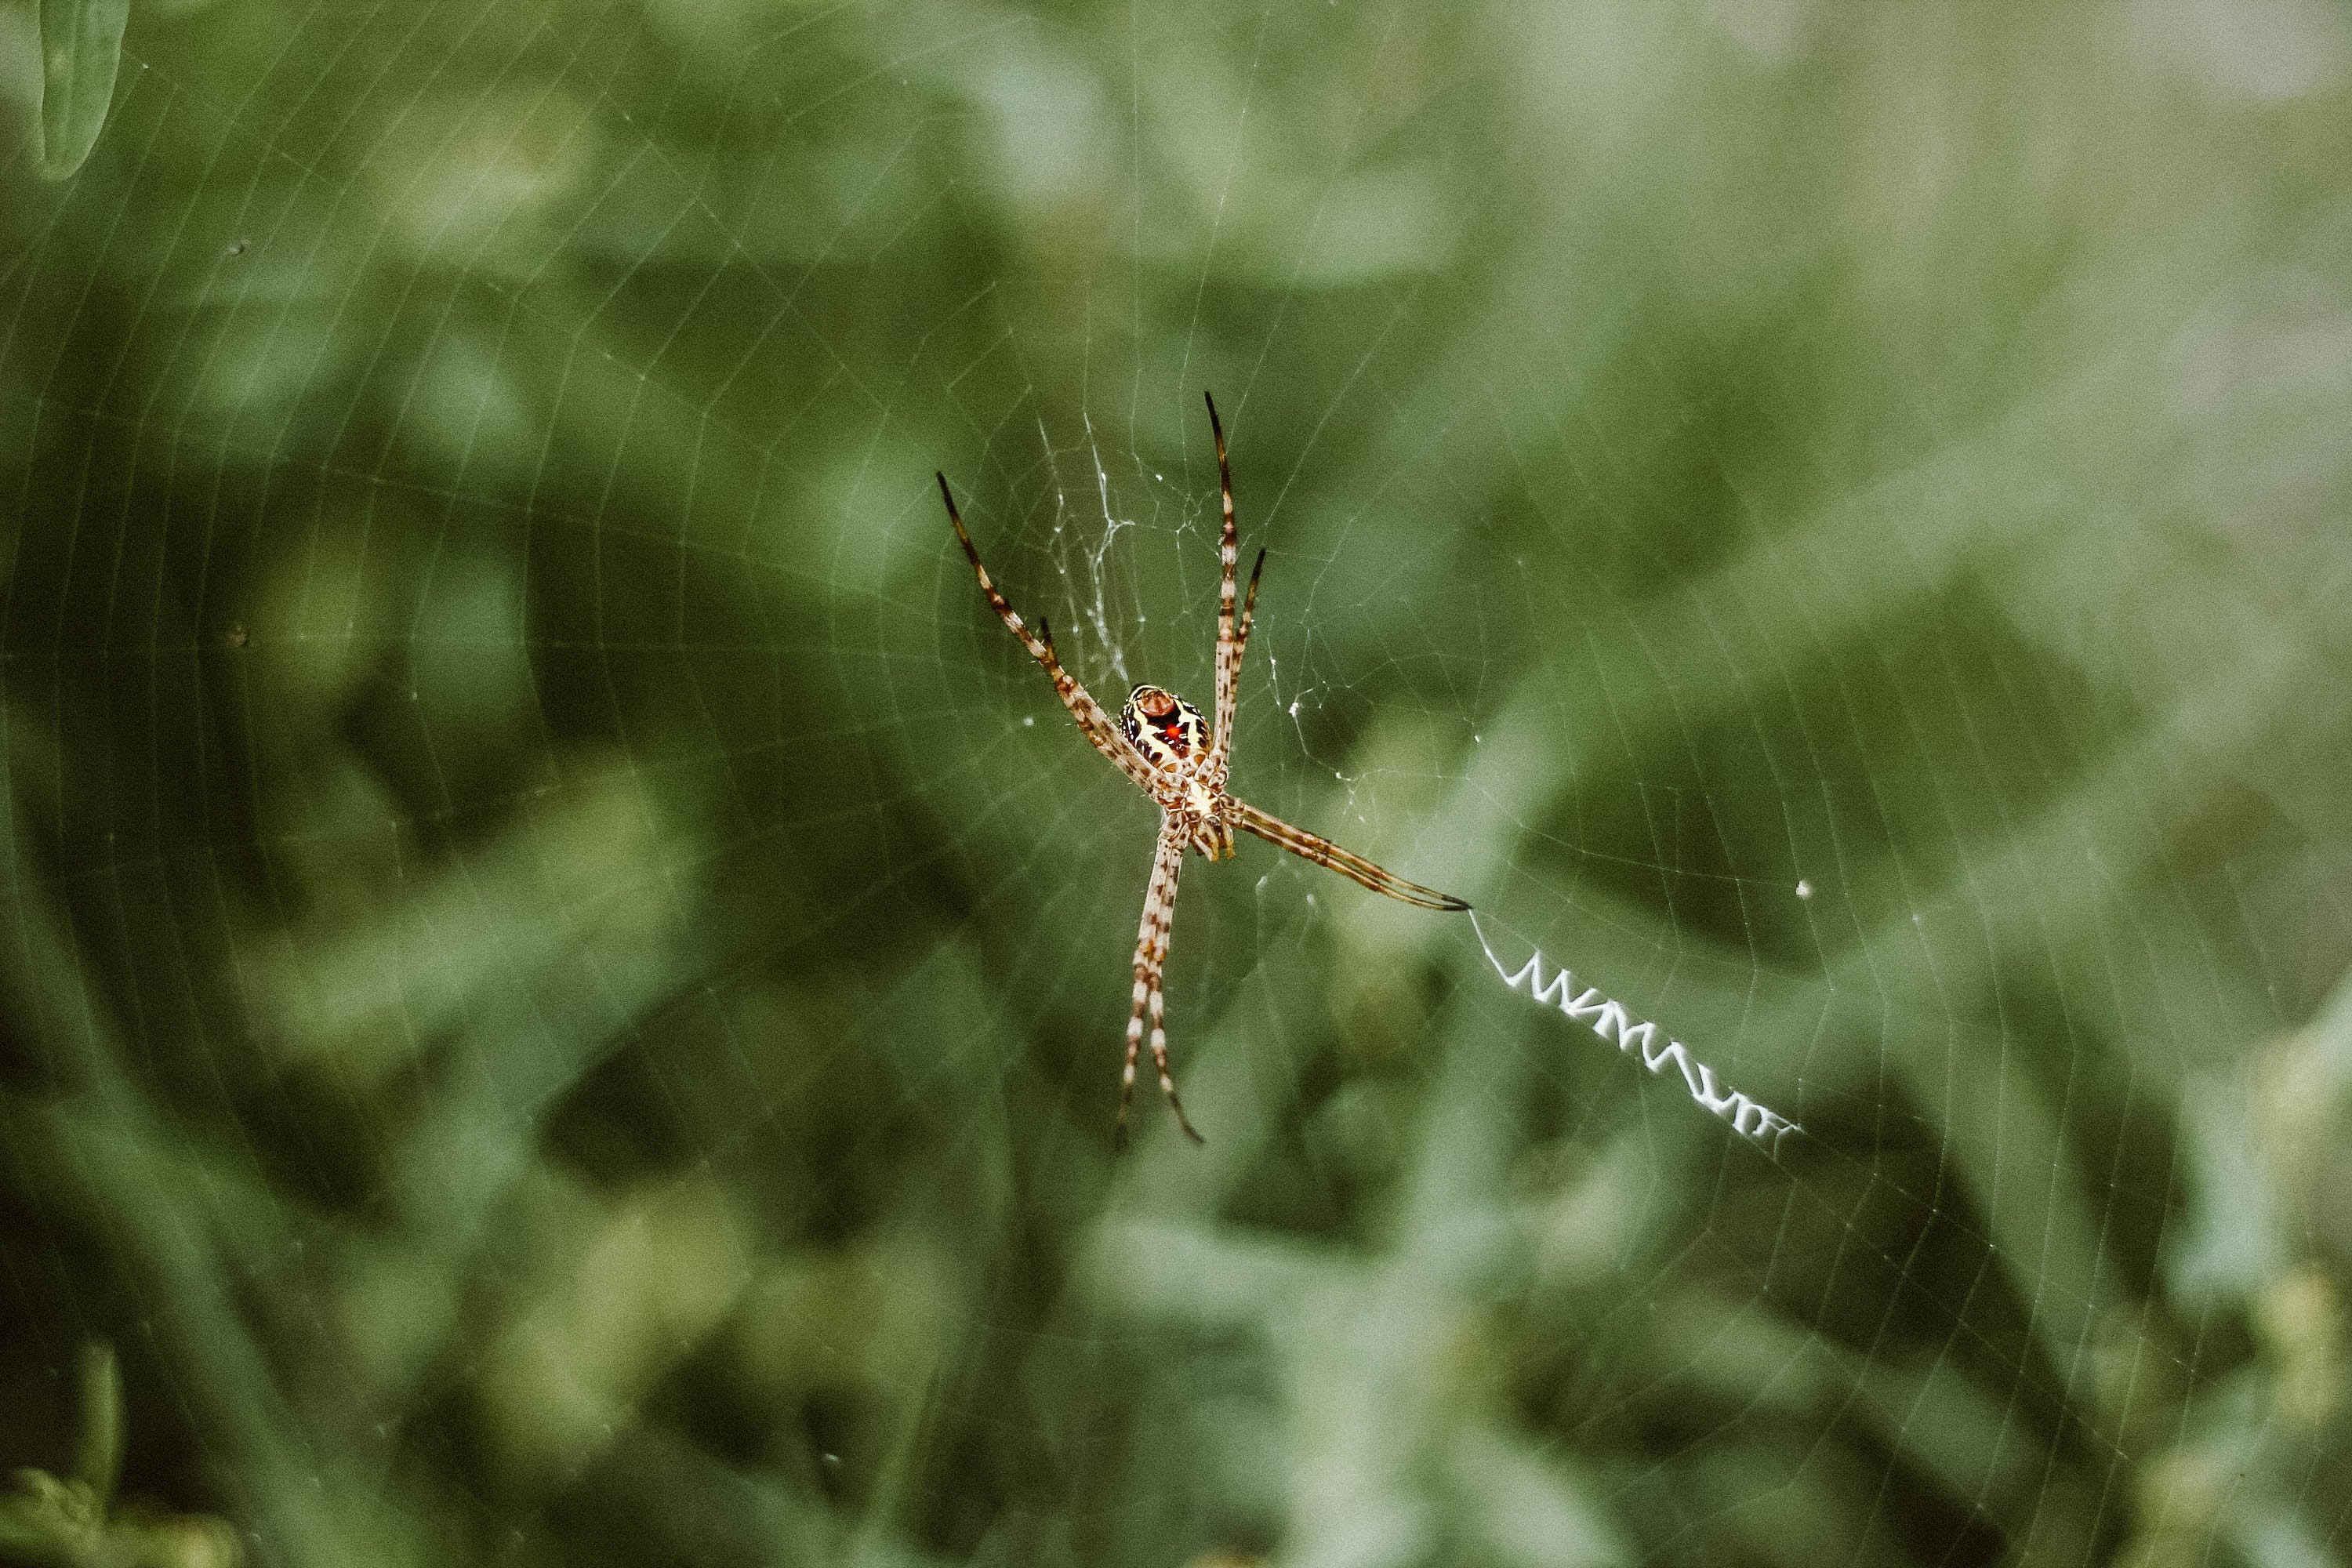 Brown Argiope Spider on Web Selective Focus Photography